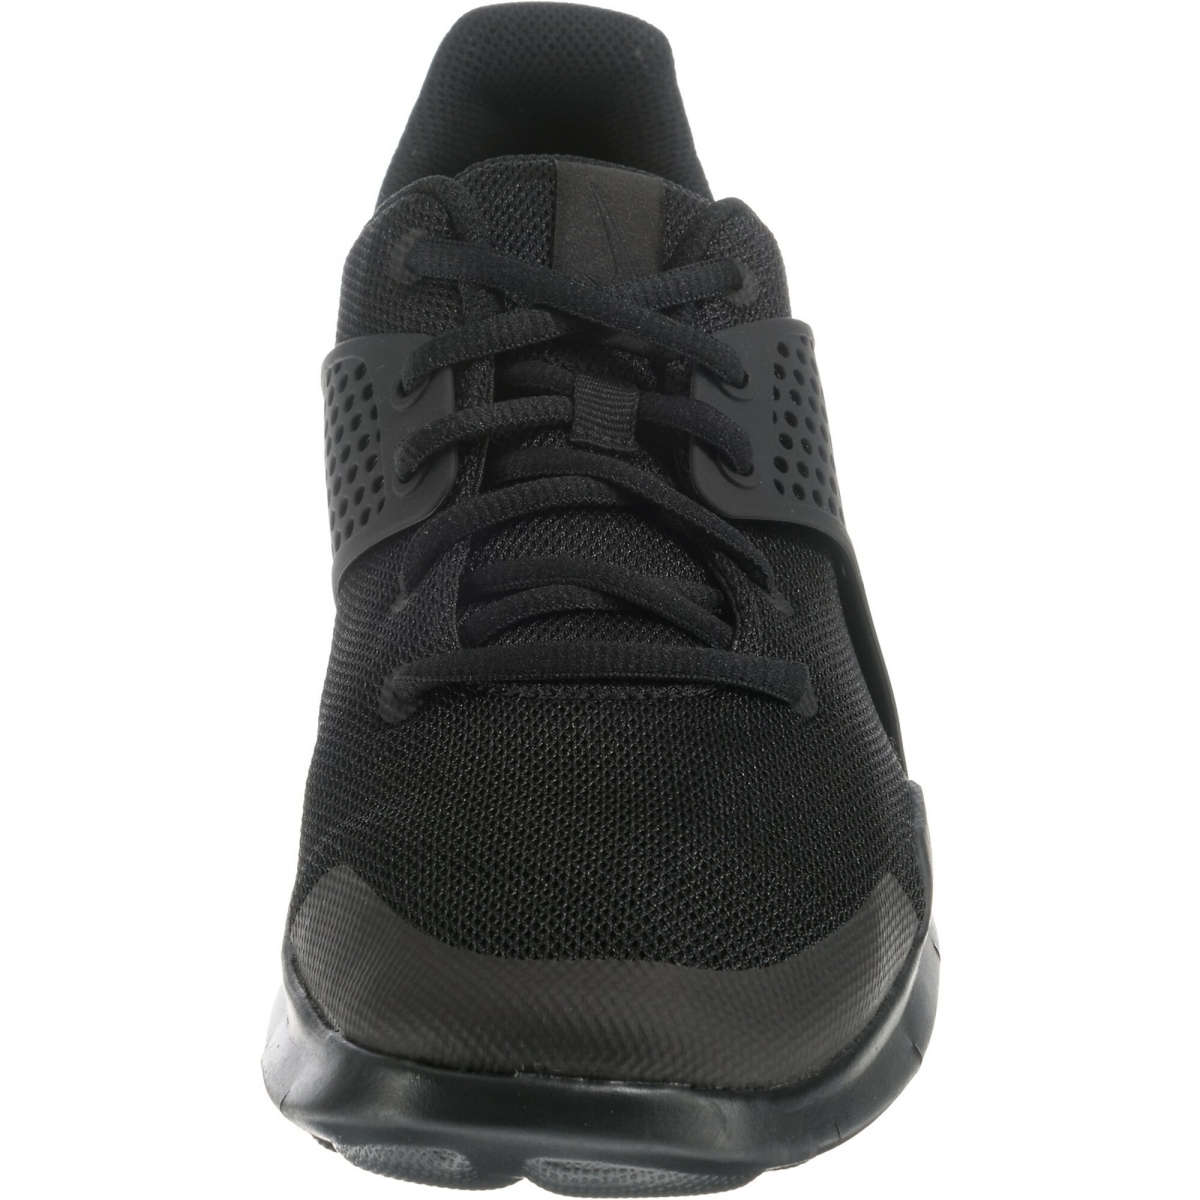 Nike Arrowz Sneaker in schwarz 902813 003 | everysize